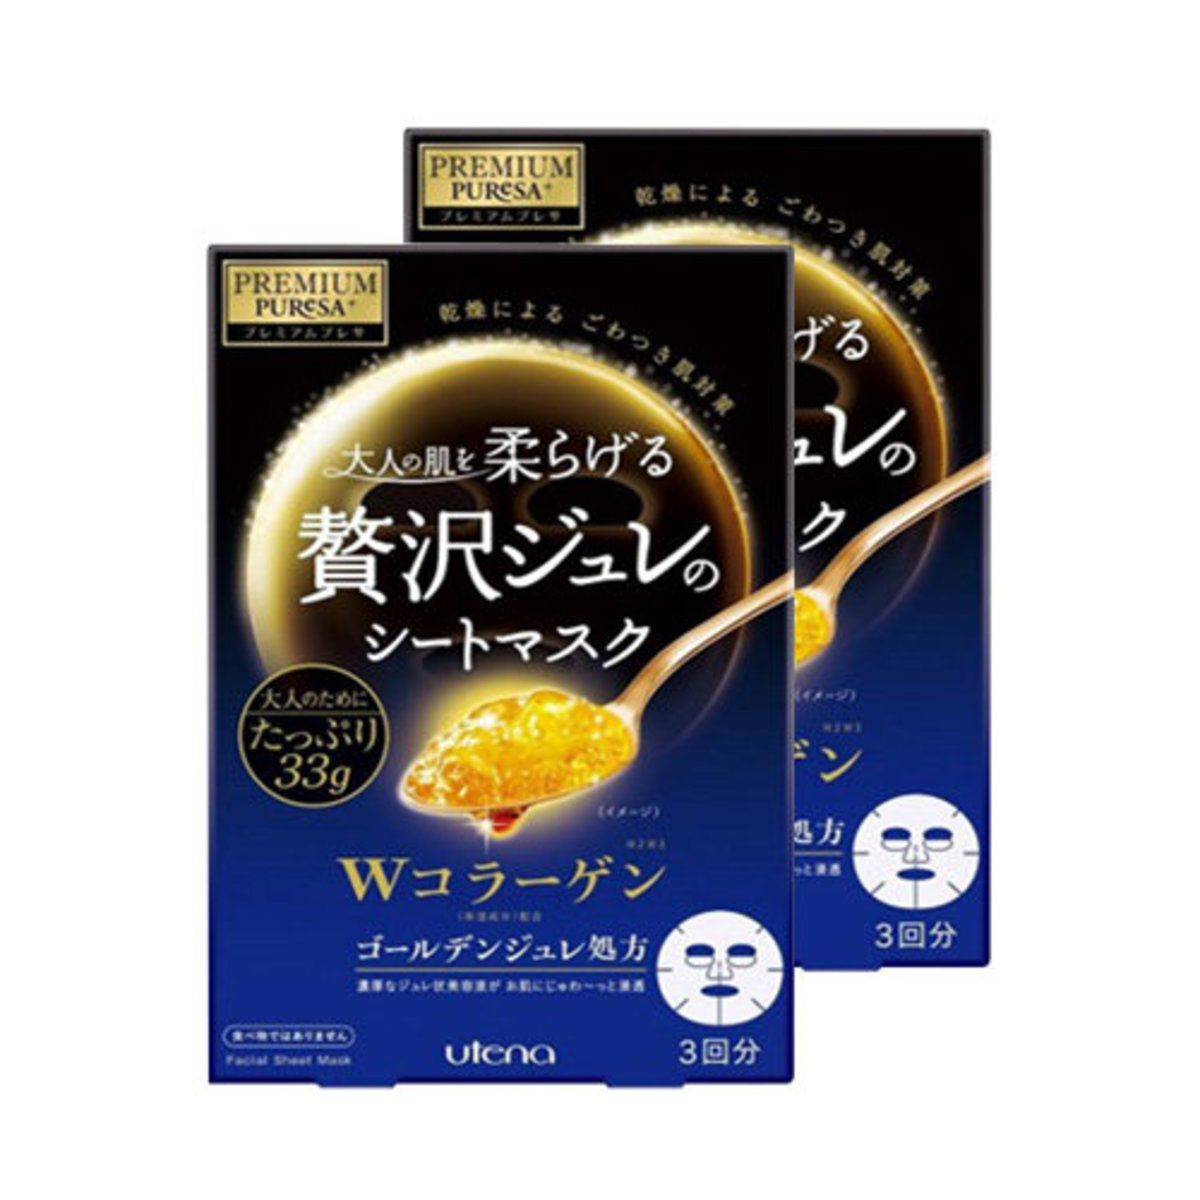 Premium Puresa Golden Gel Mask (Collagen) (3piece) (Blue) x2